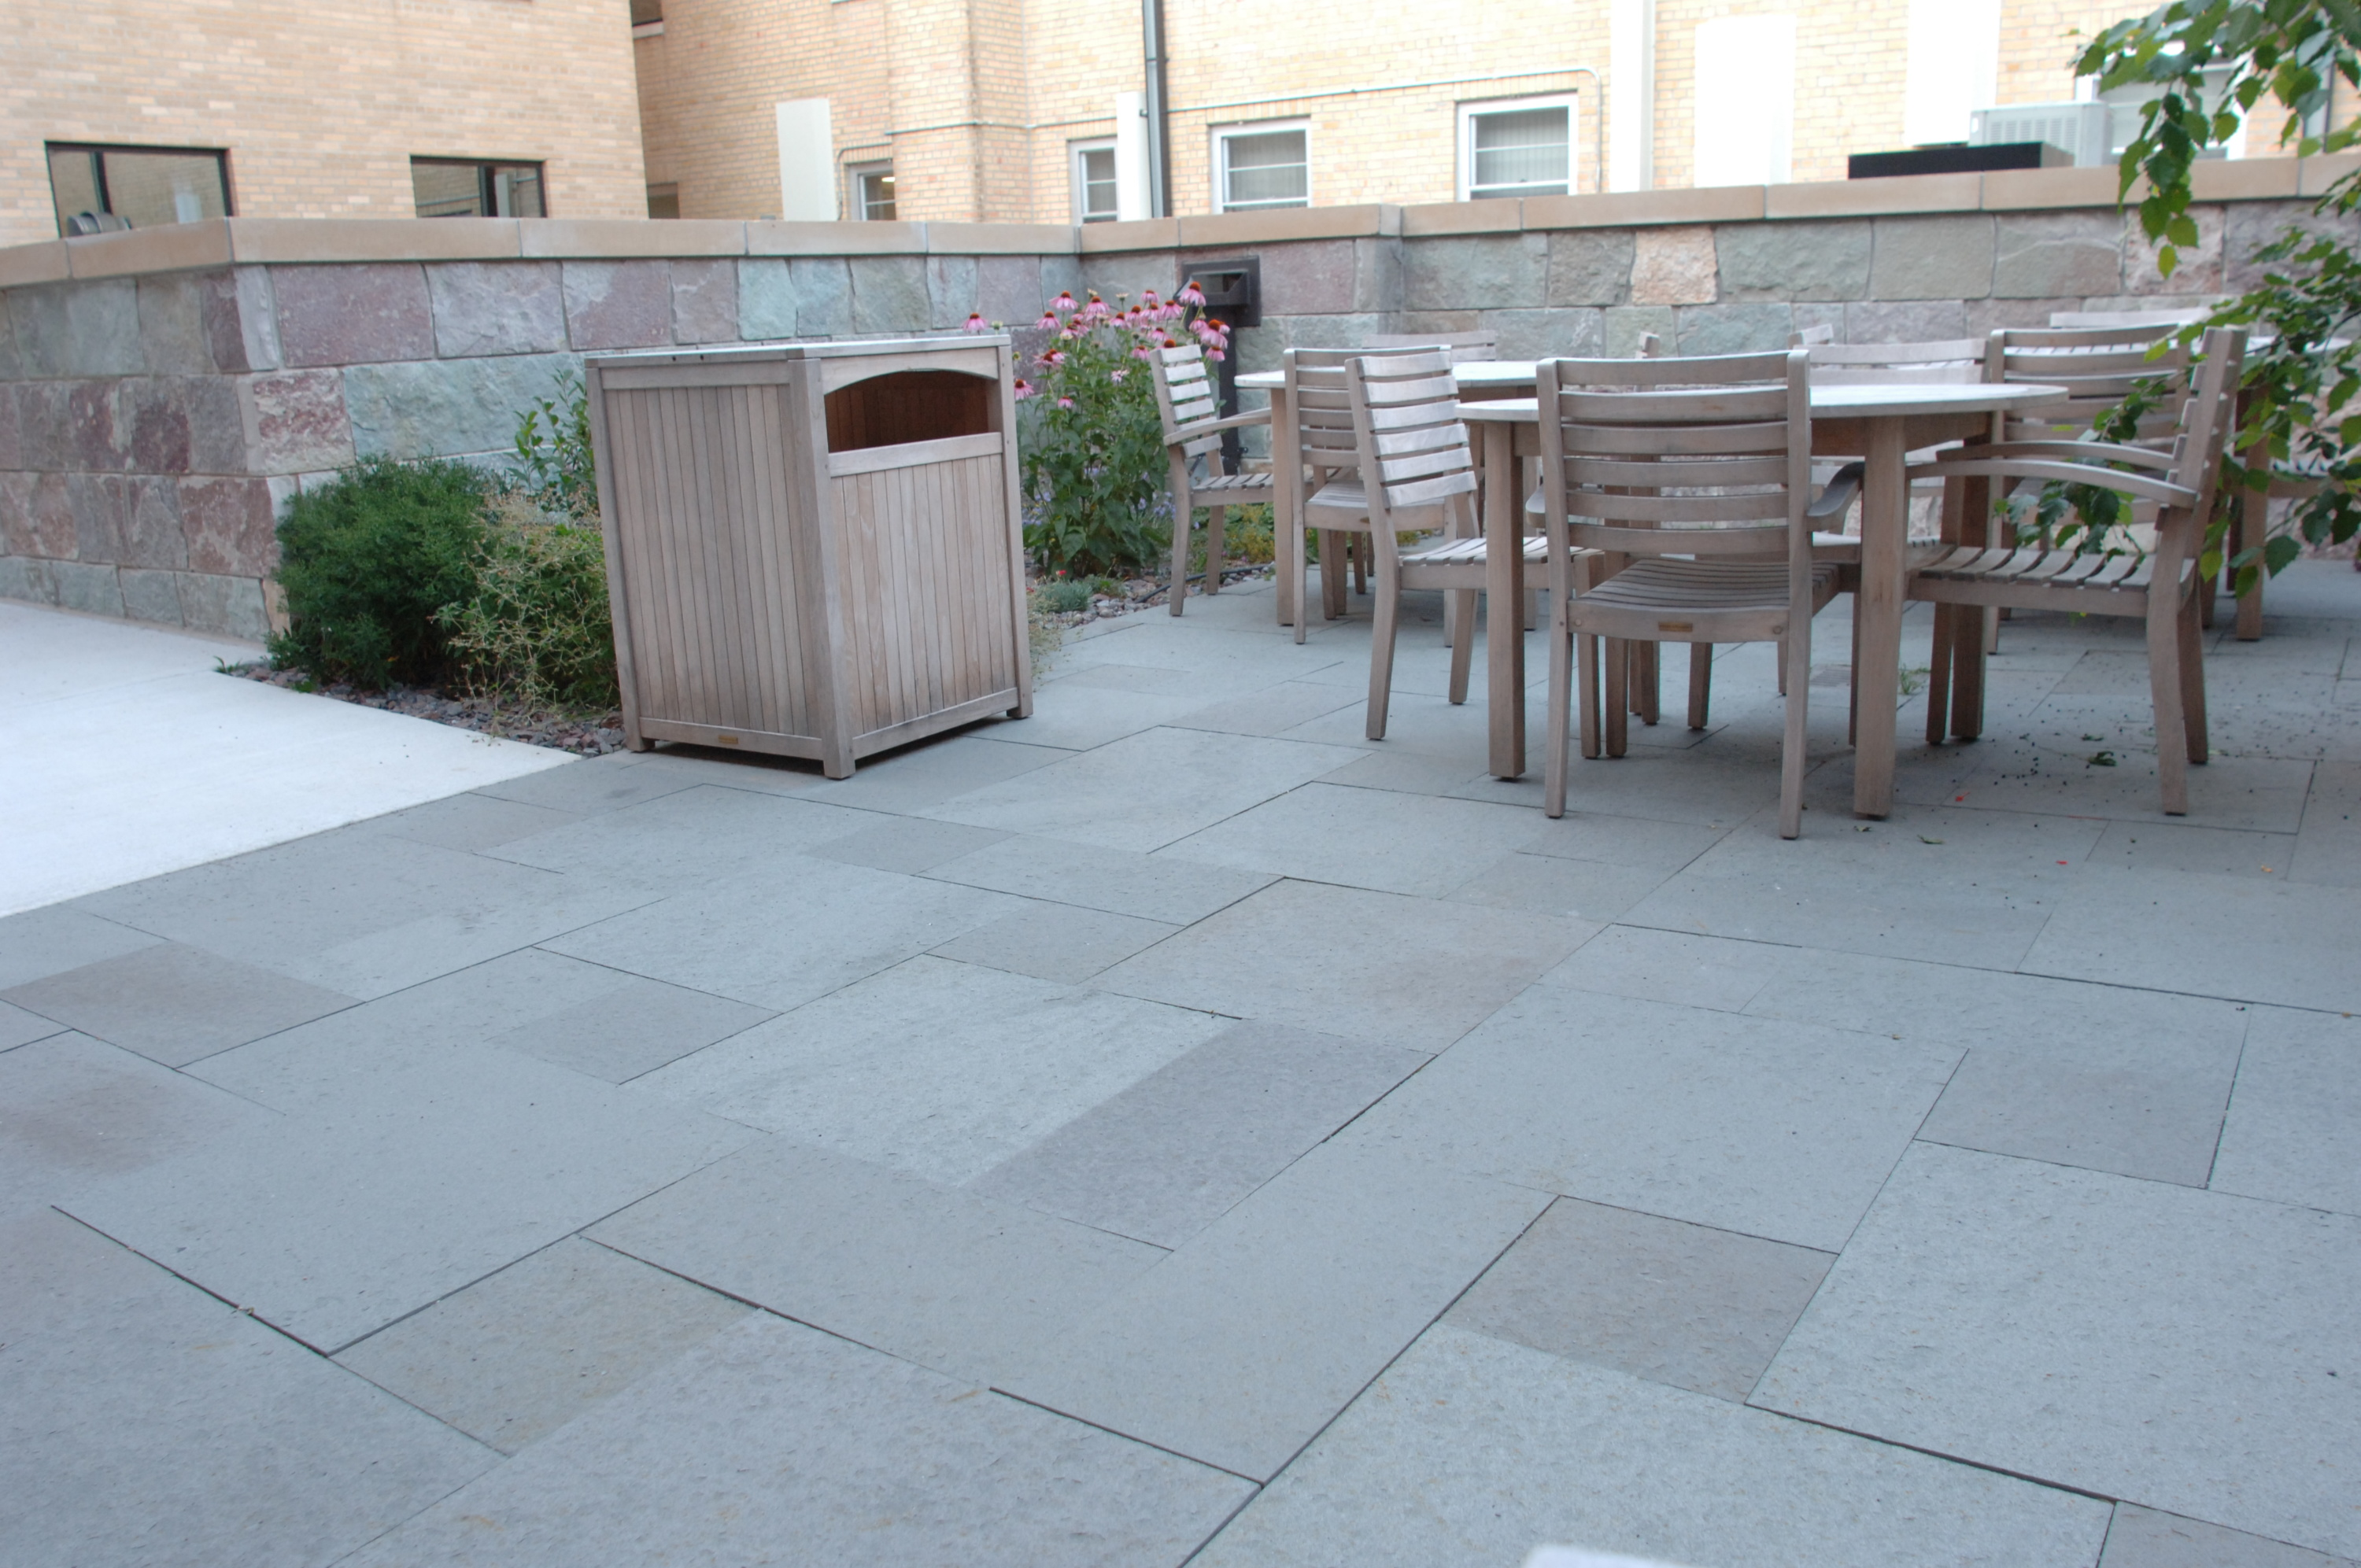 bluestone pavers have a smooth, natural cleft finish that is rich with NRUYIGA